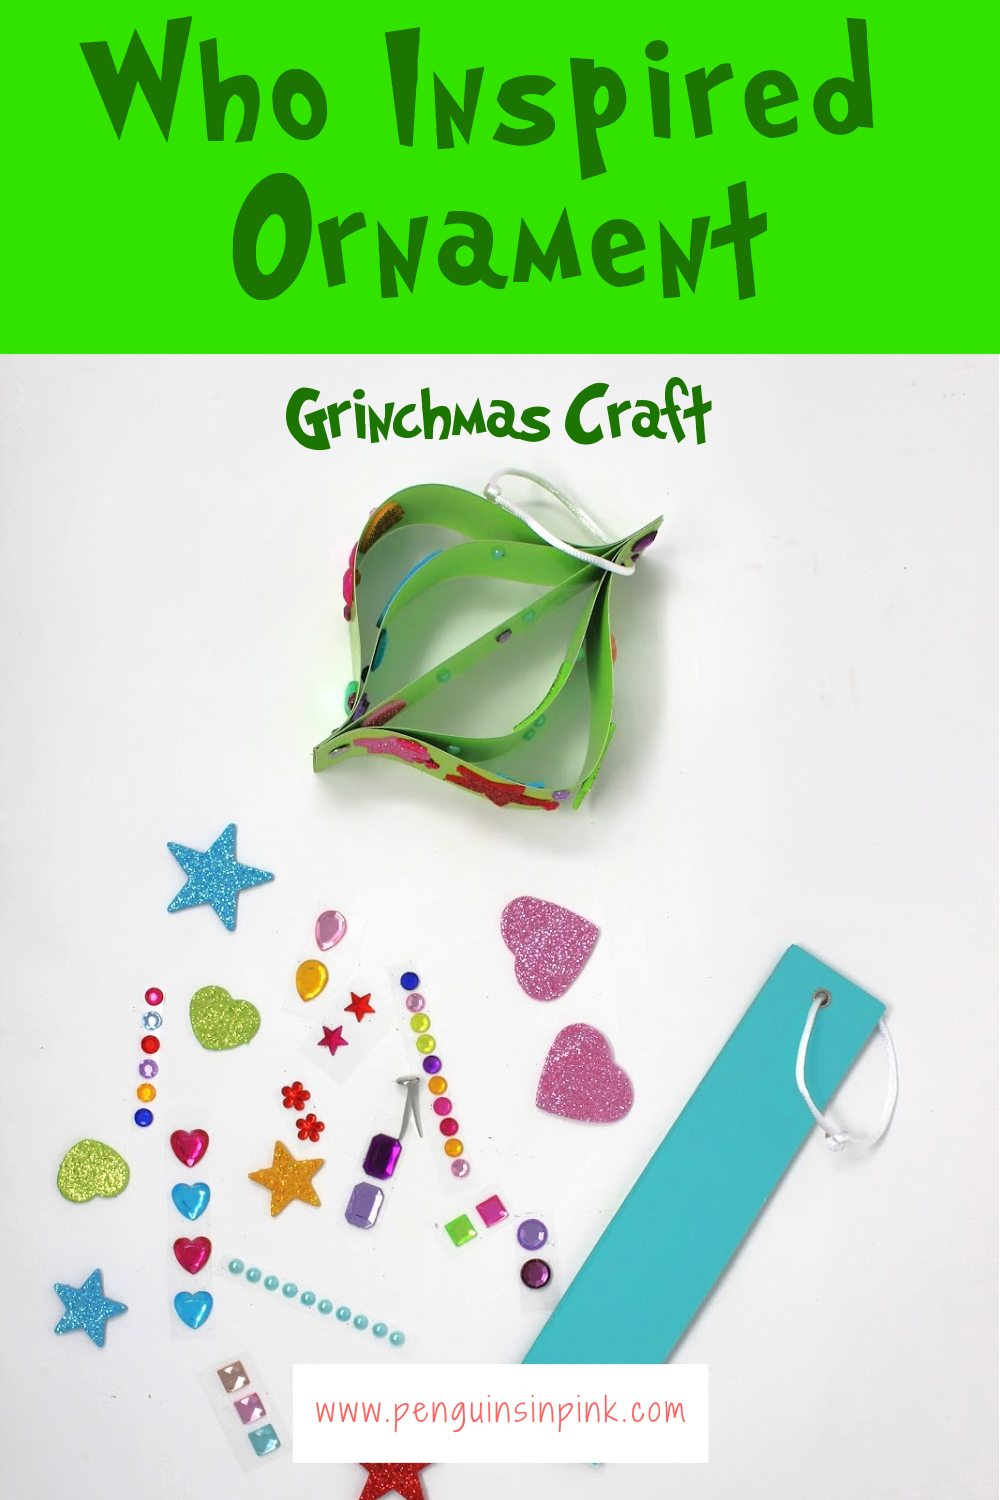 A perfect addition to any Grinchmas party, this Who Inspired Ornament Grinchmas Craft is super cute and easy to make. The base of the ornament is made from card stock. Then the ornament is decorated with stickers, glitter, and markers by the kids.